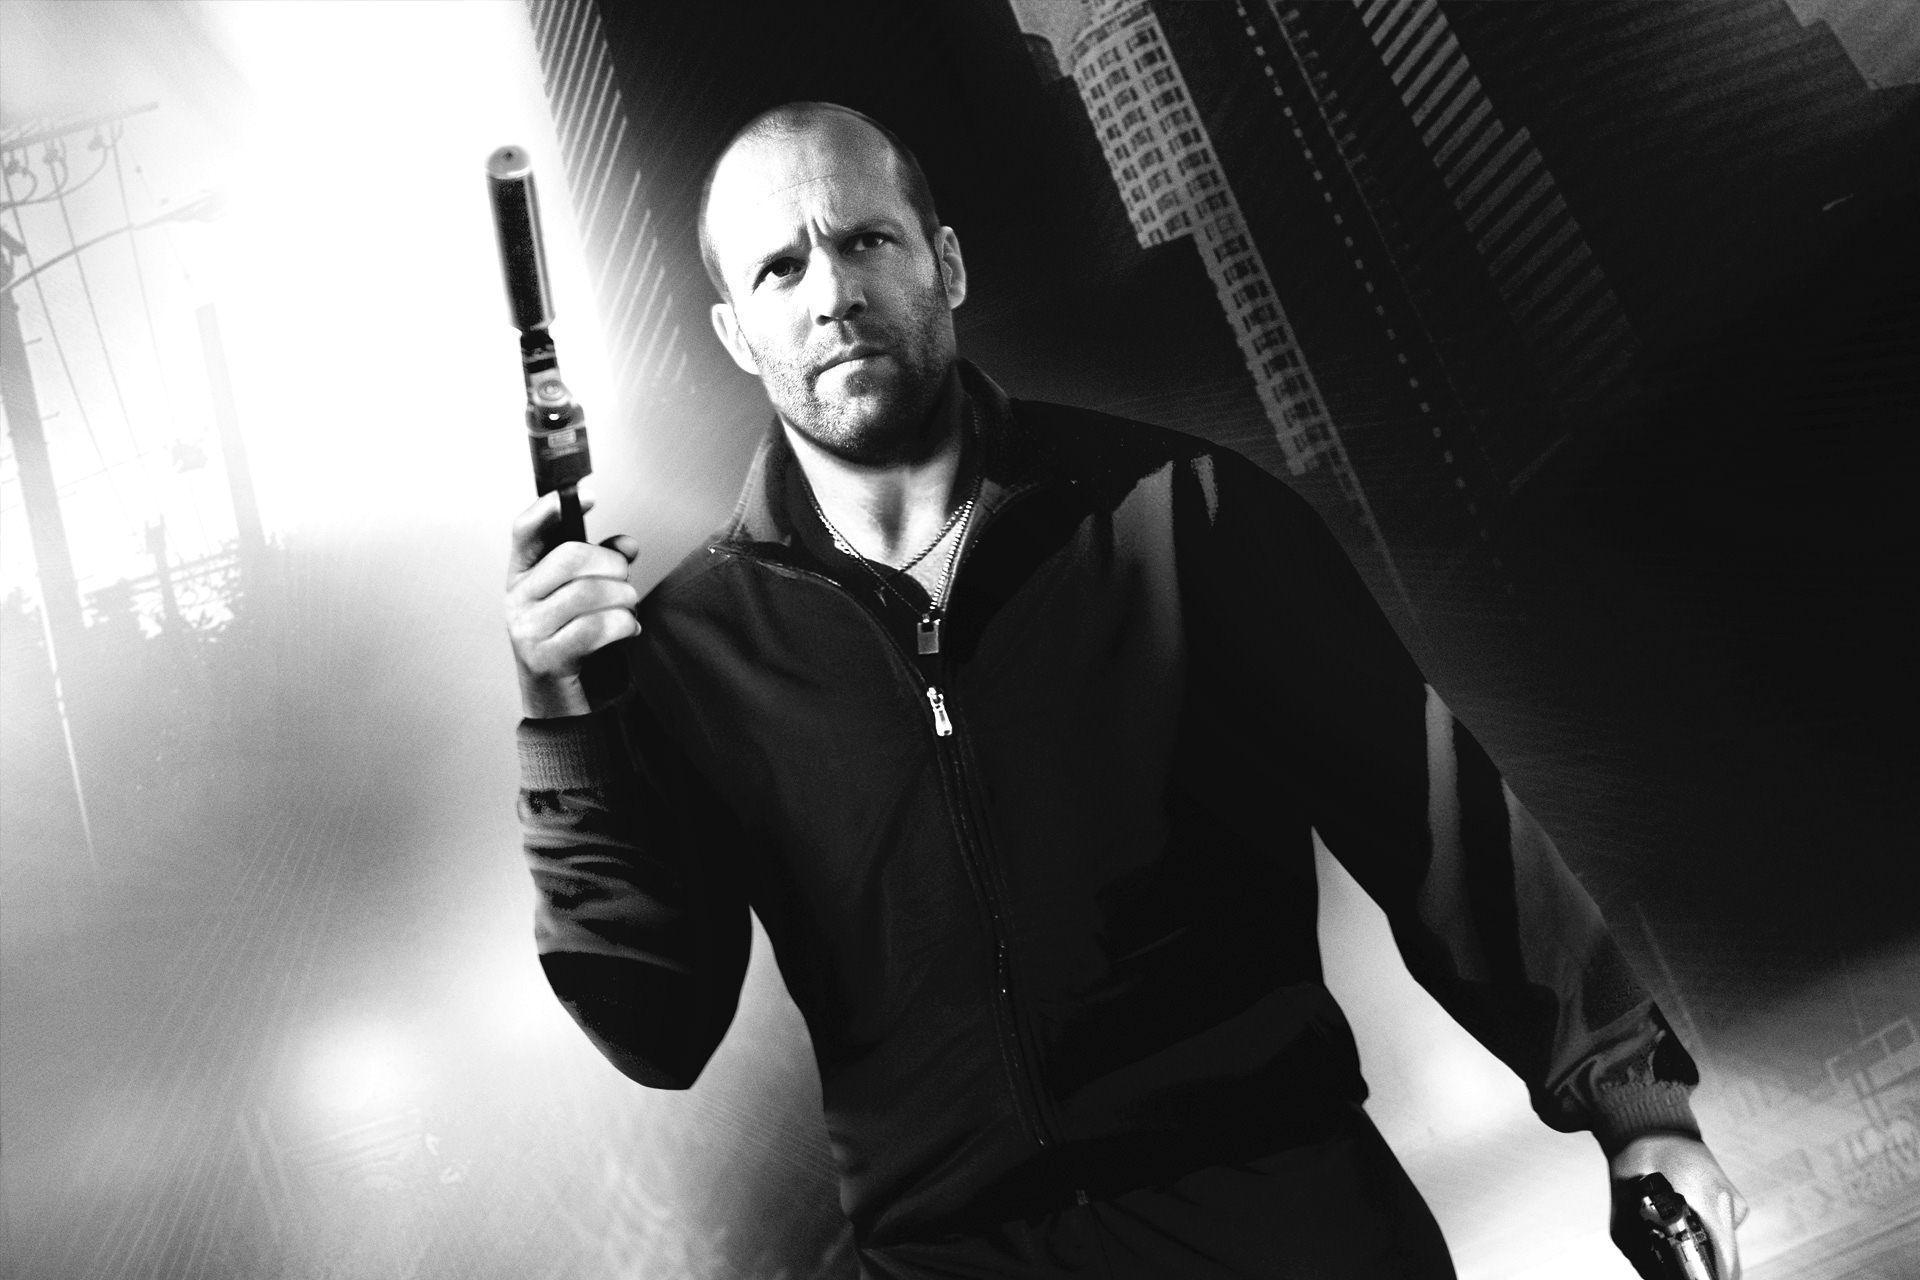 Fonds d'écran Jason Statham : tous les wallpapers Jason Statham